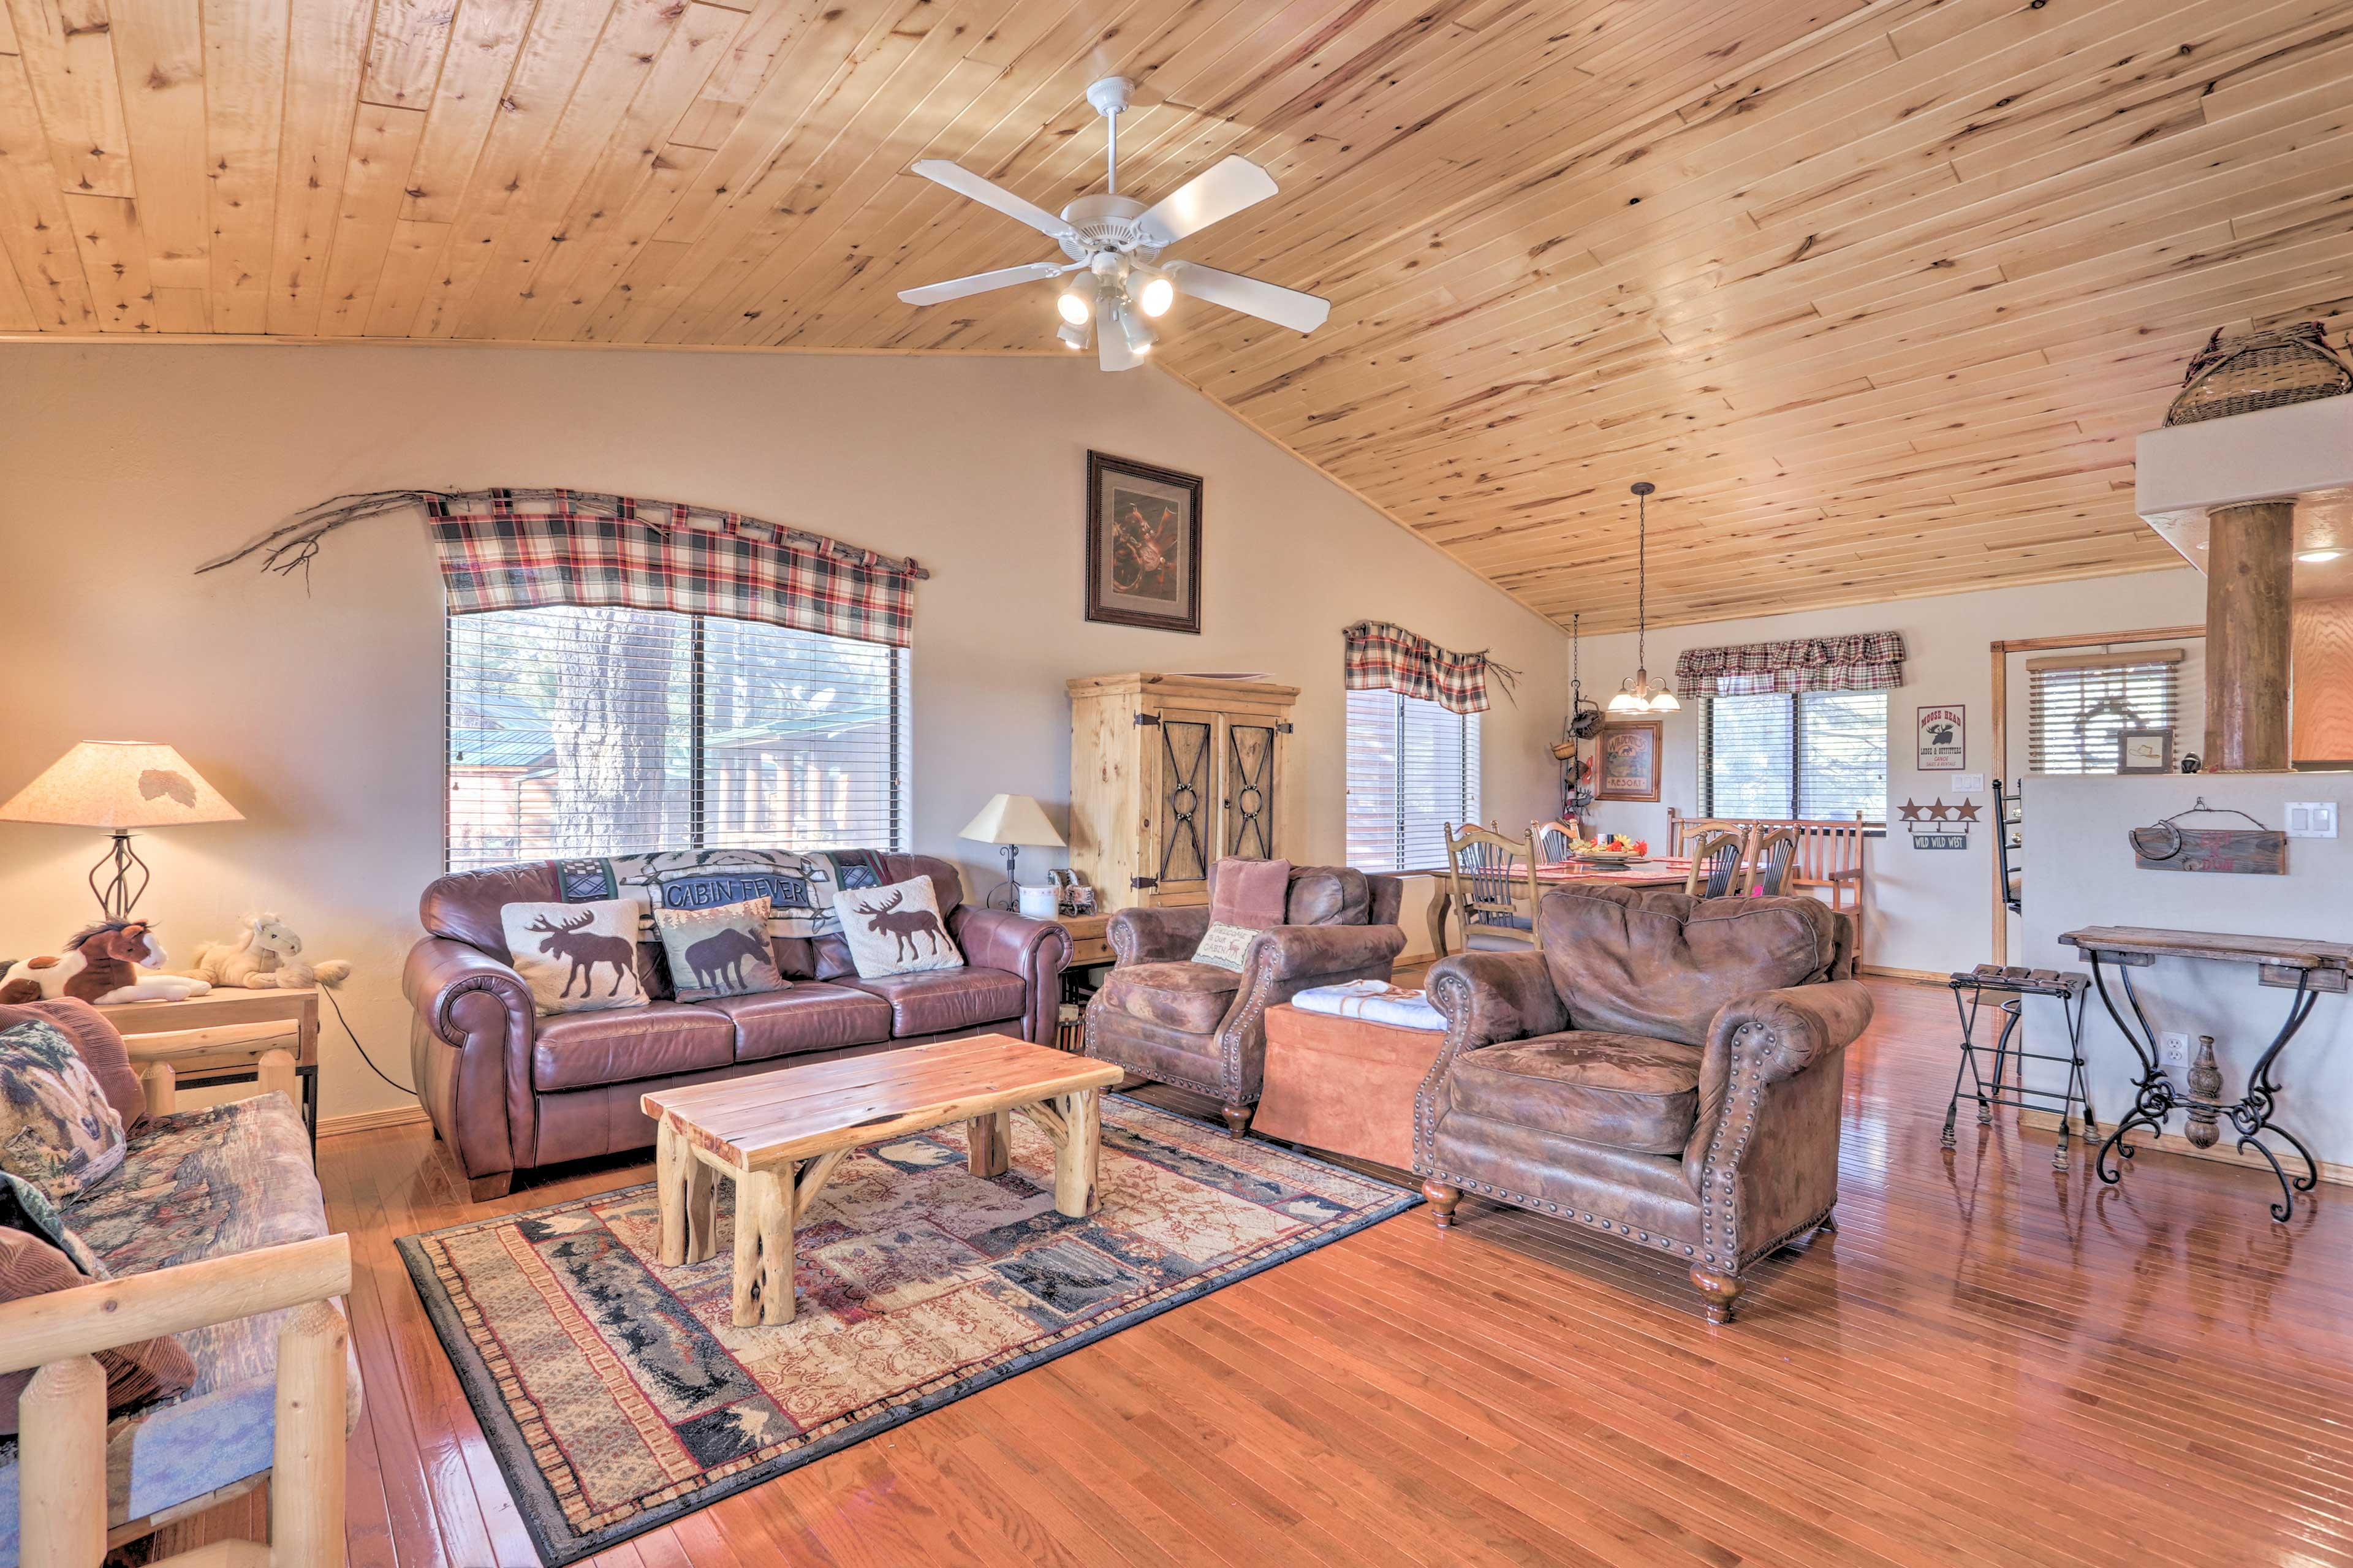 Kick back and relax at this Bison Ranch cabin in Overgaard, AZ!